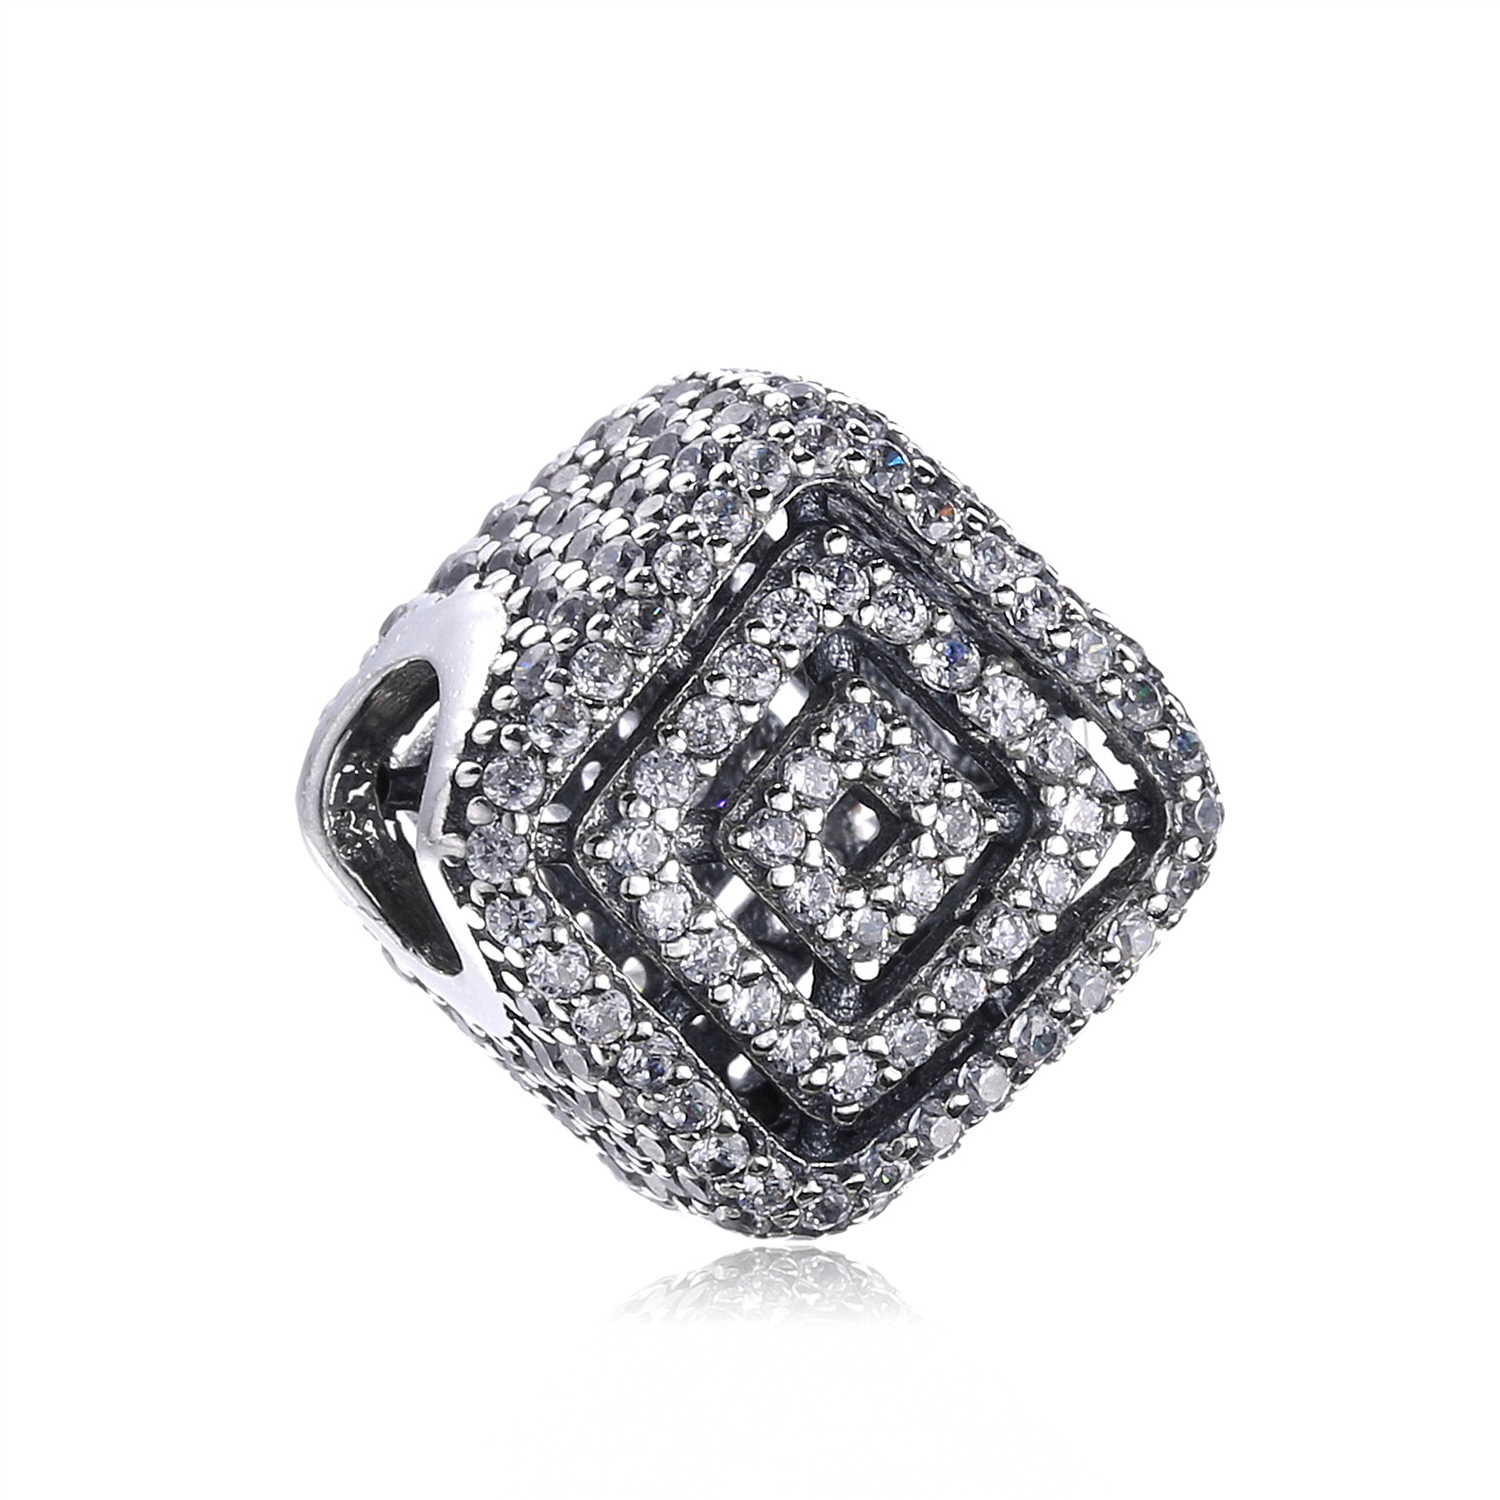 925 Sterling Silver Pave Dazzling CZ Square Openwork Charm Beads Fits Original Pandora Charms Bracelet DIY Jewelry Accessories